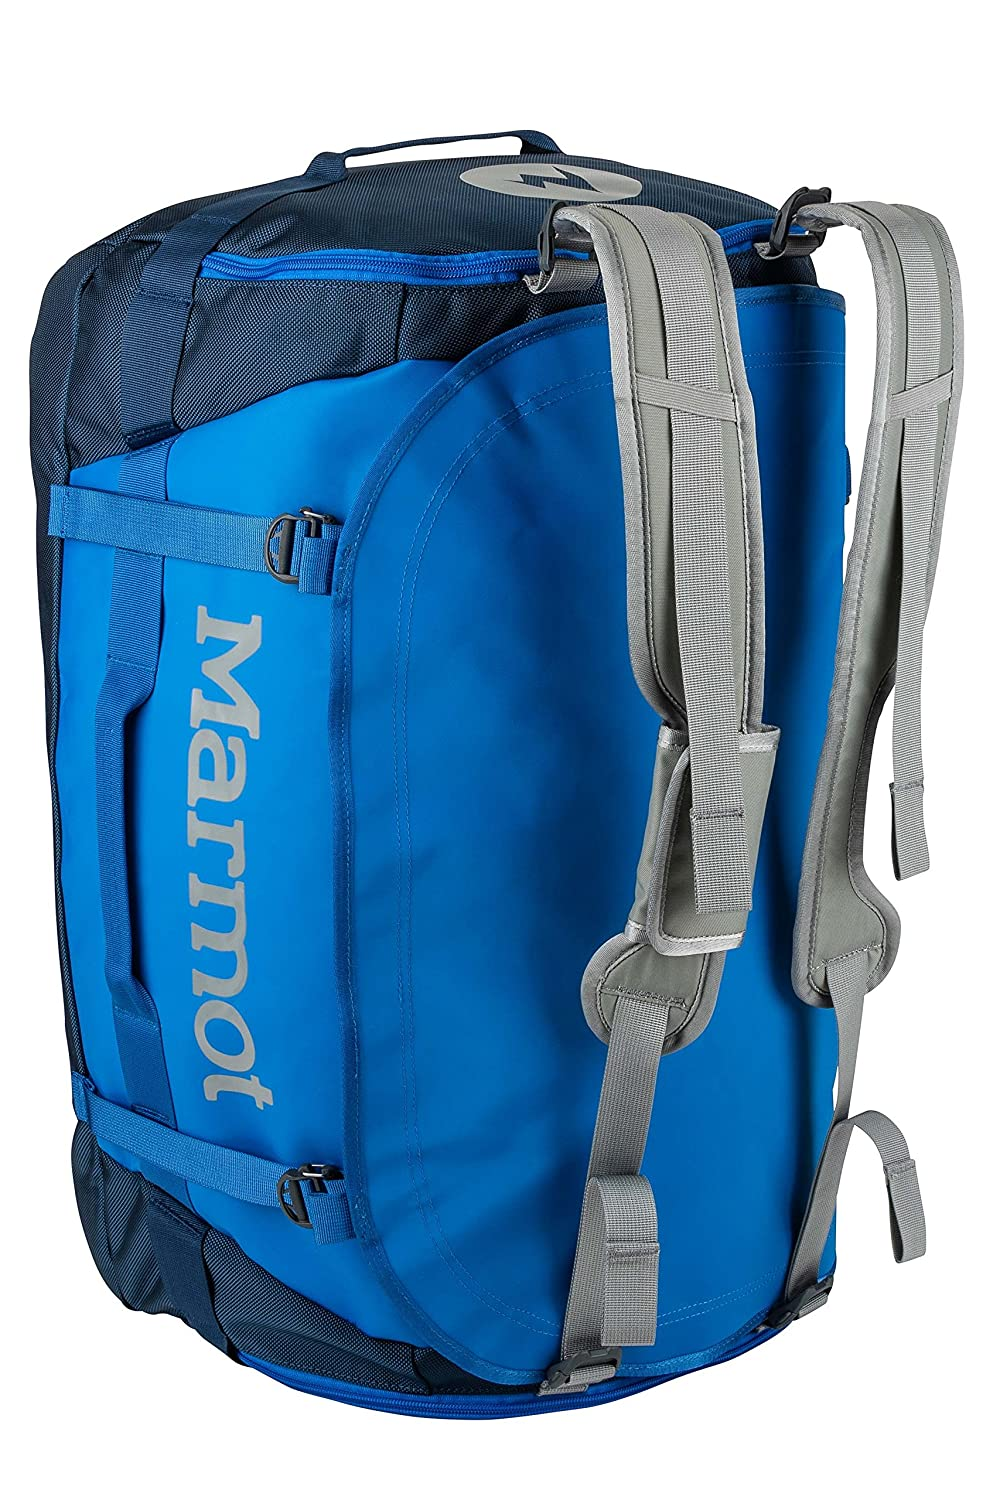 Marmot 29260-2823 Sac Mixte Adulte, Peak Blue/Vintage Navy, Grand